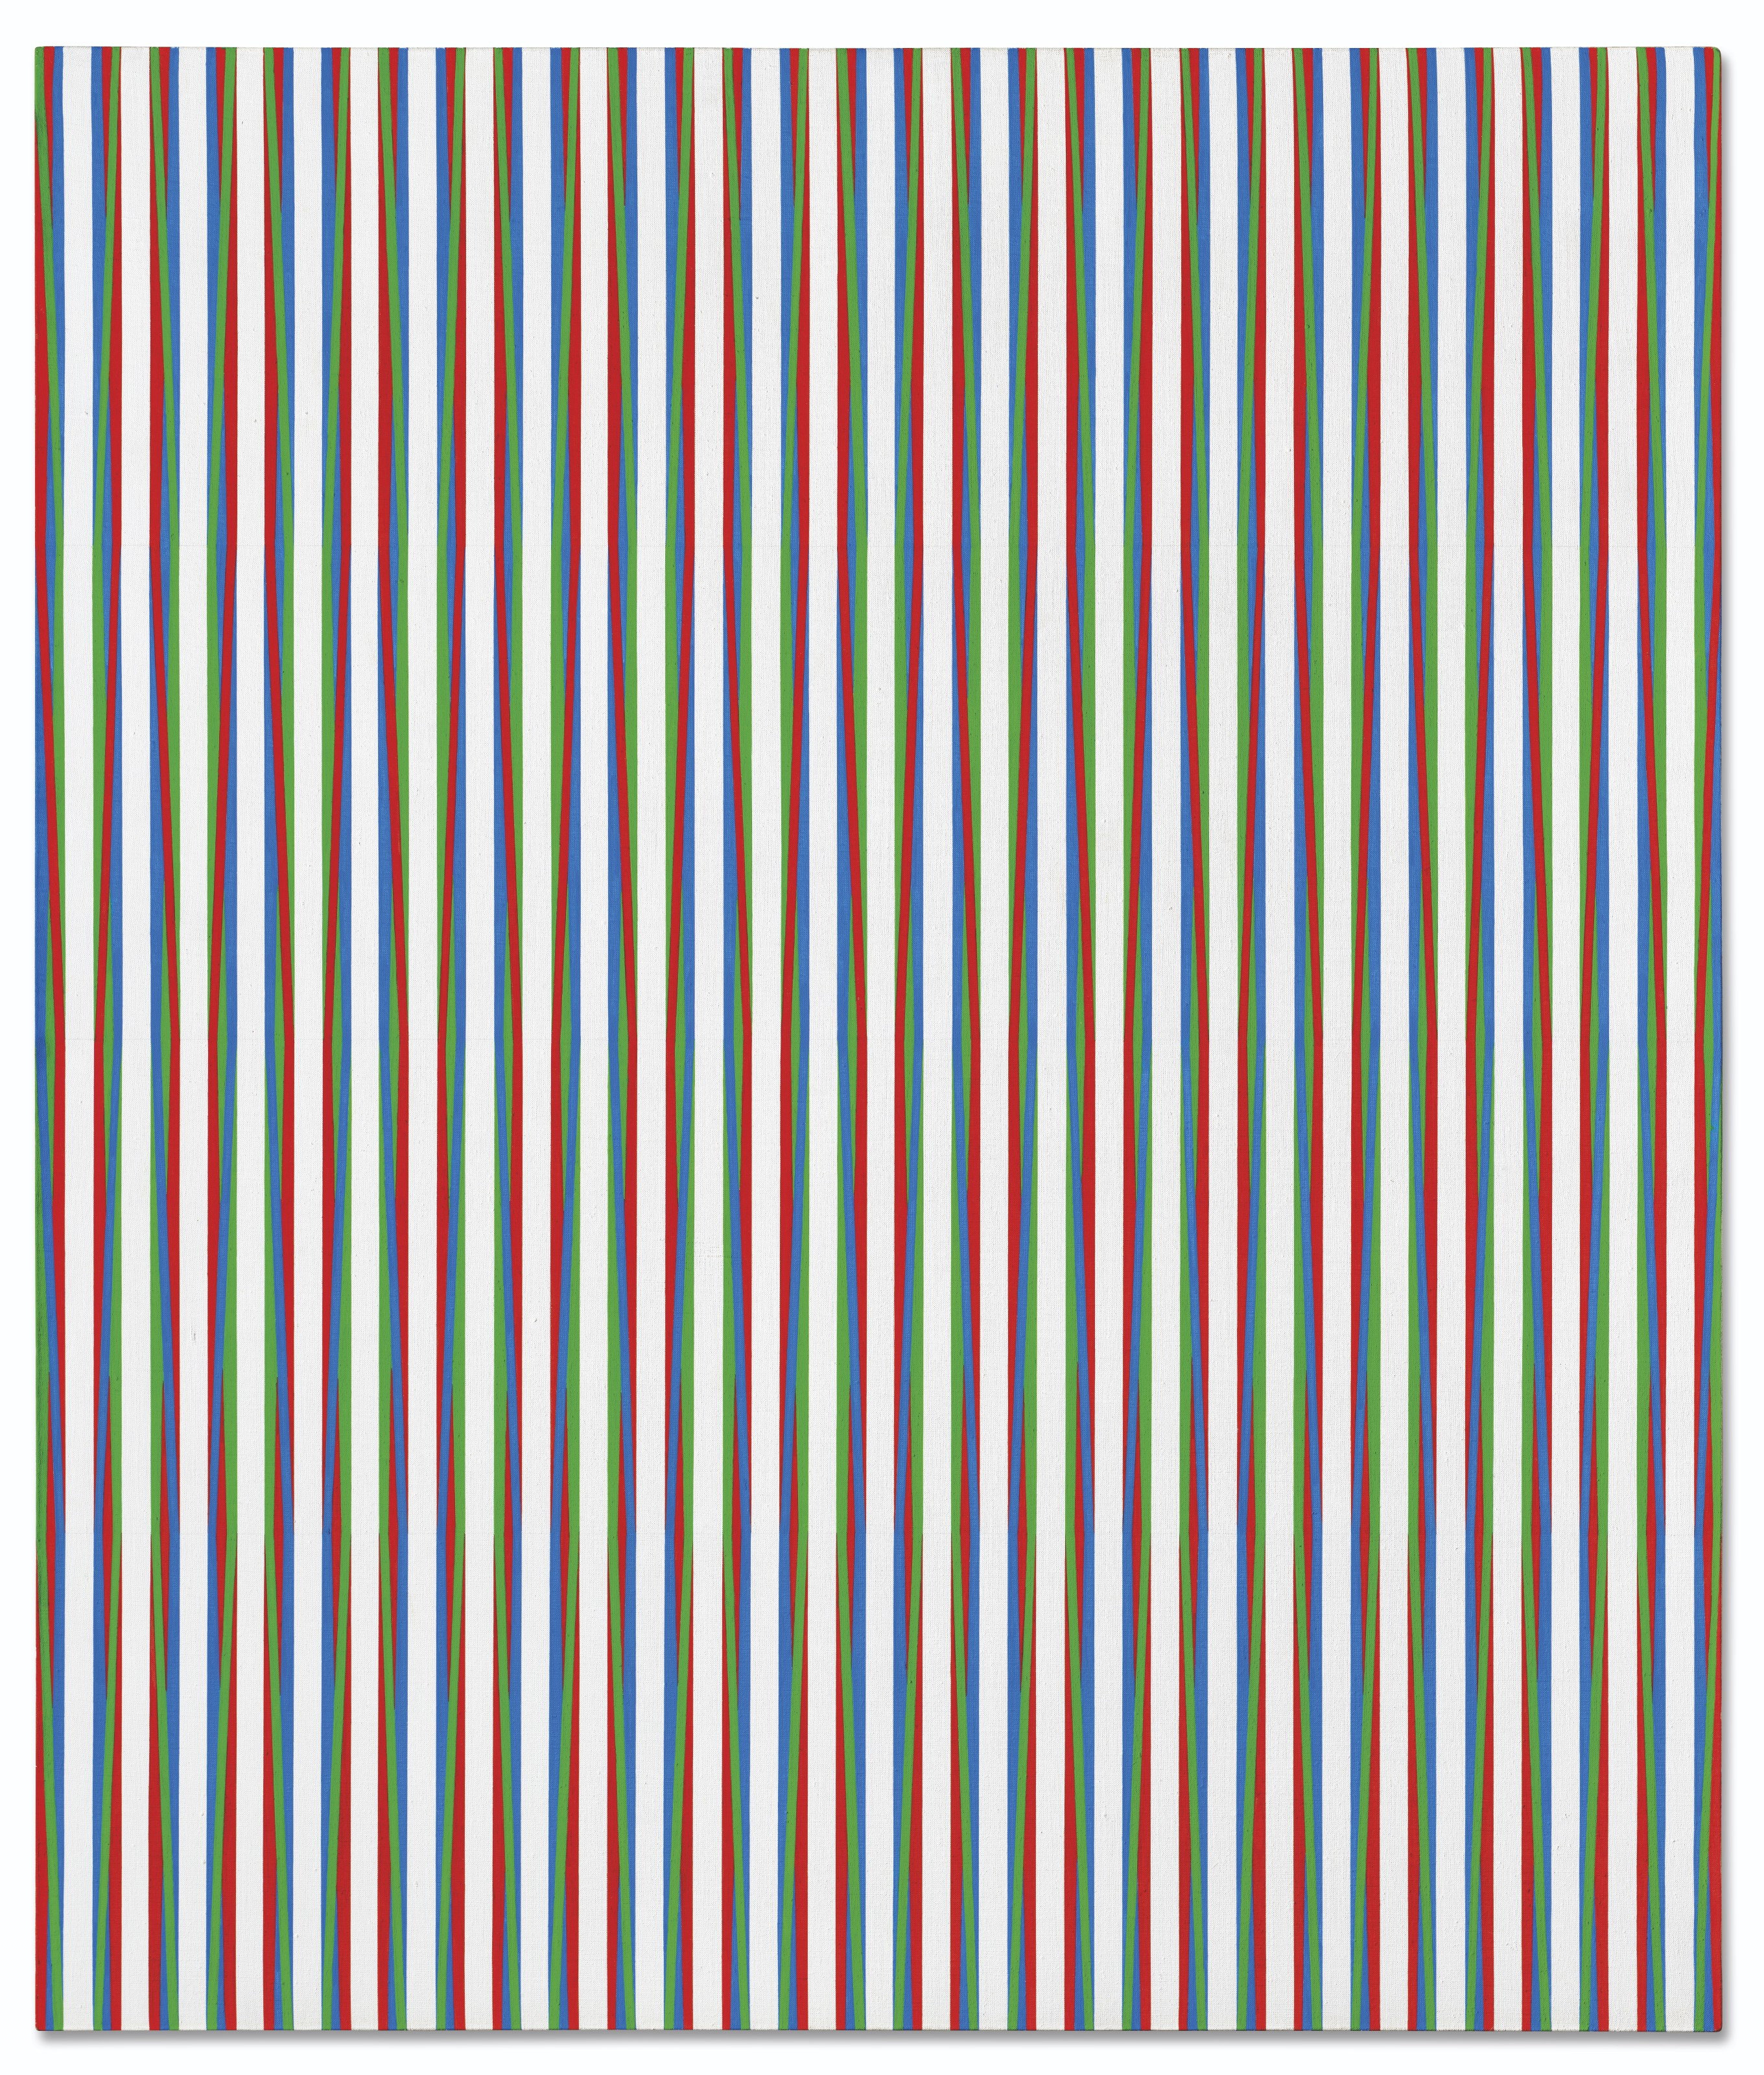 Bridget Riley (b. 1931), Zing 2, 1971. Acrylic emulsion on canvas. 54⅛ x 44¼ in (132.2 x 112.2 cm). Sold for £3,262,500 on 30 June 2021 at Christie's in London